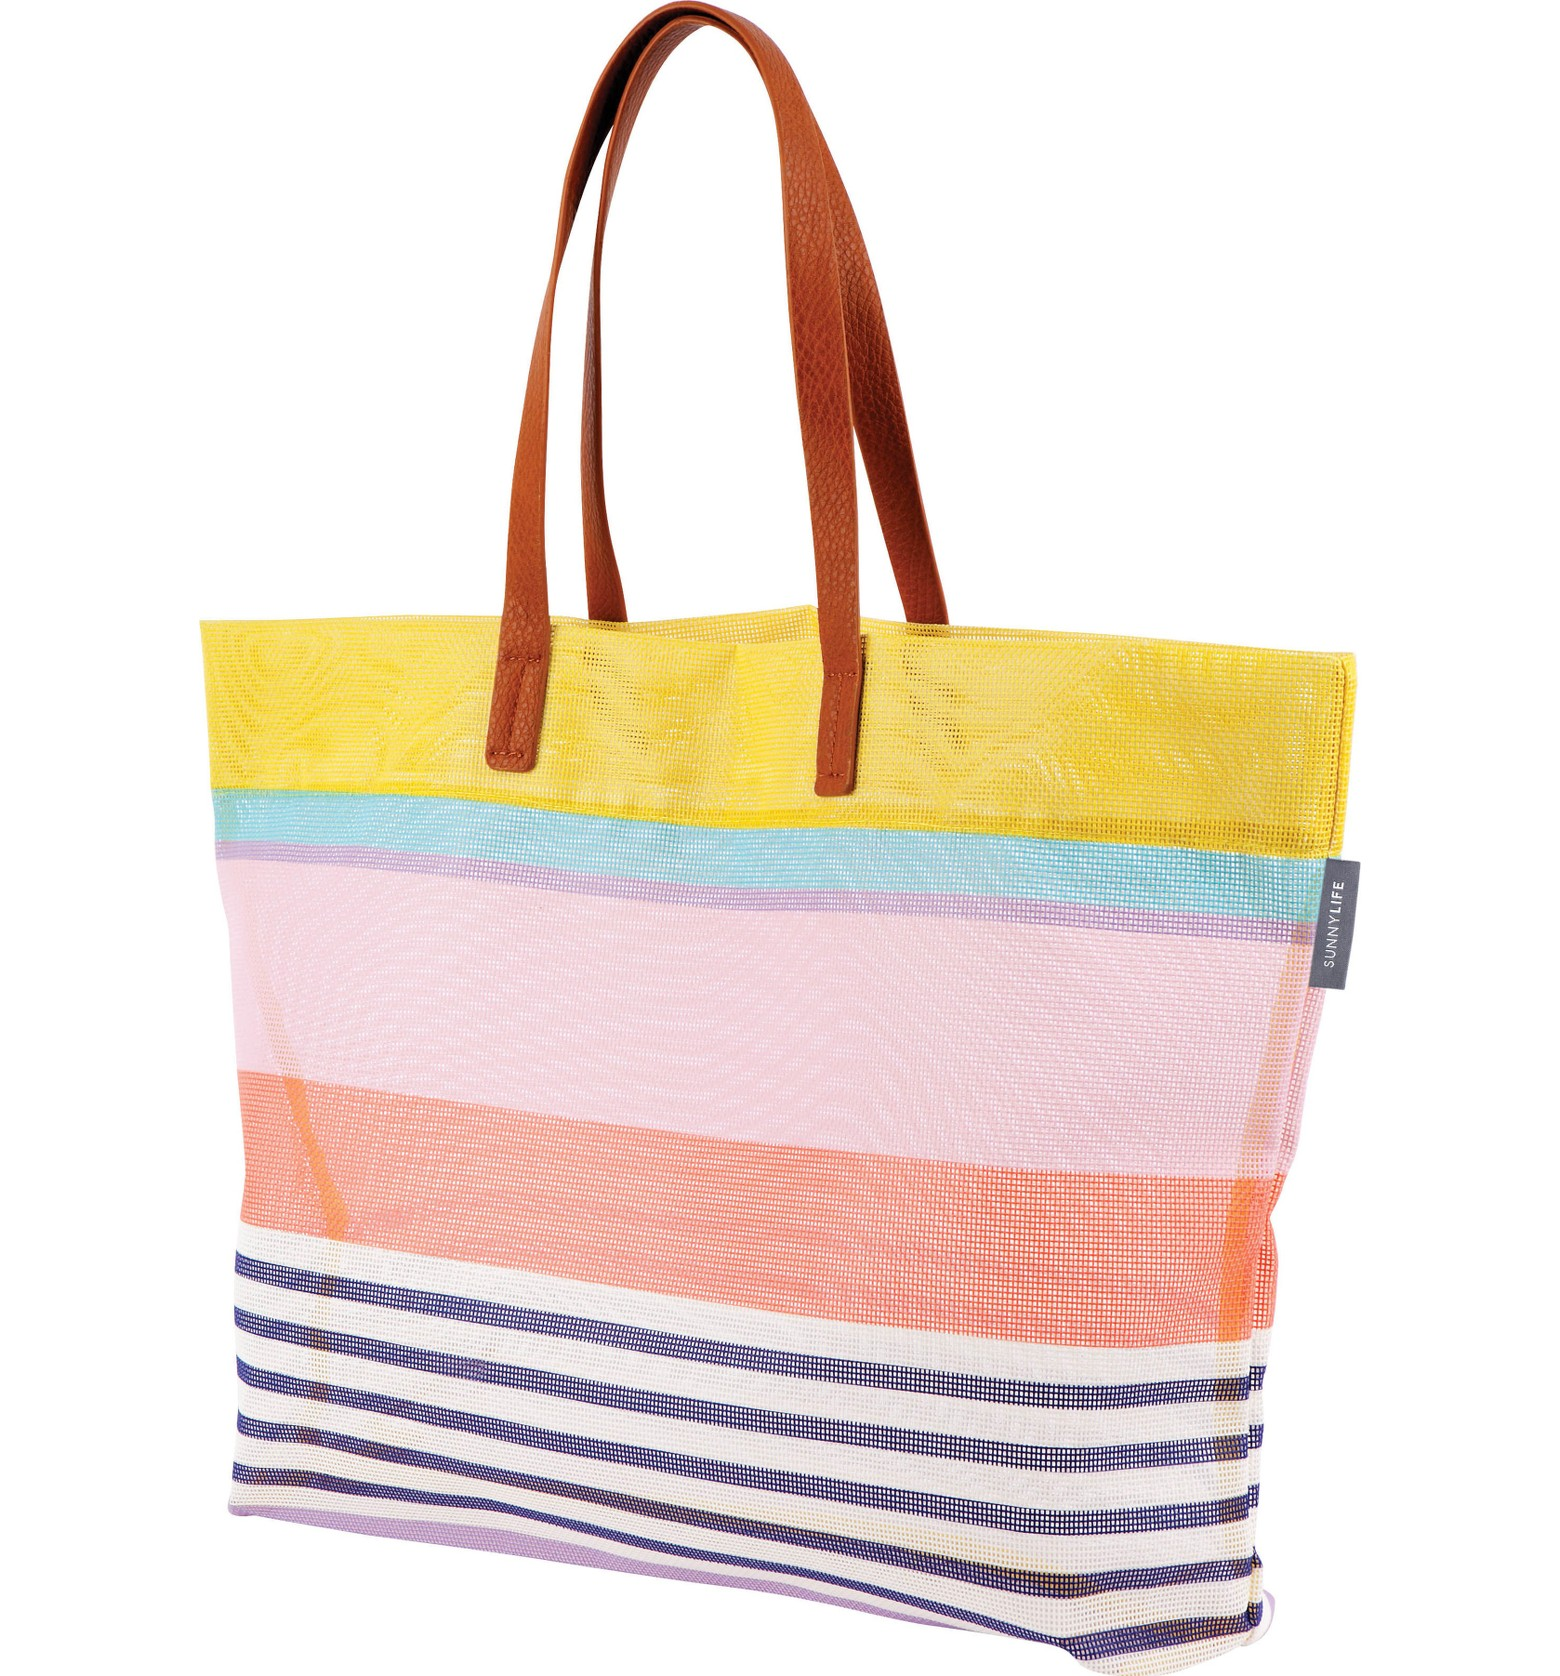 Faux Leather Totes, Beach Bags, Purses and Backpacks